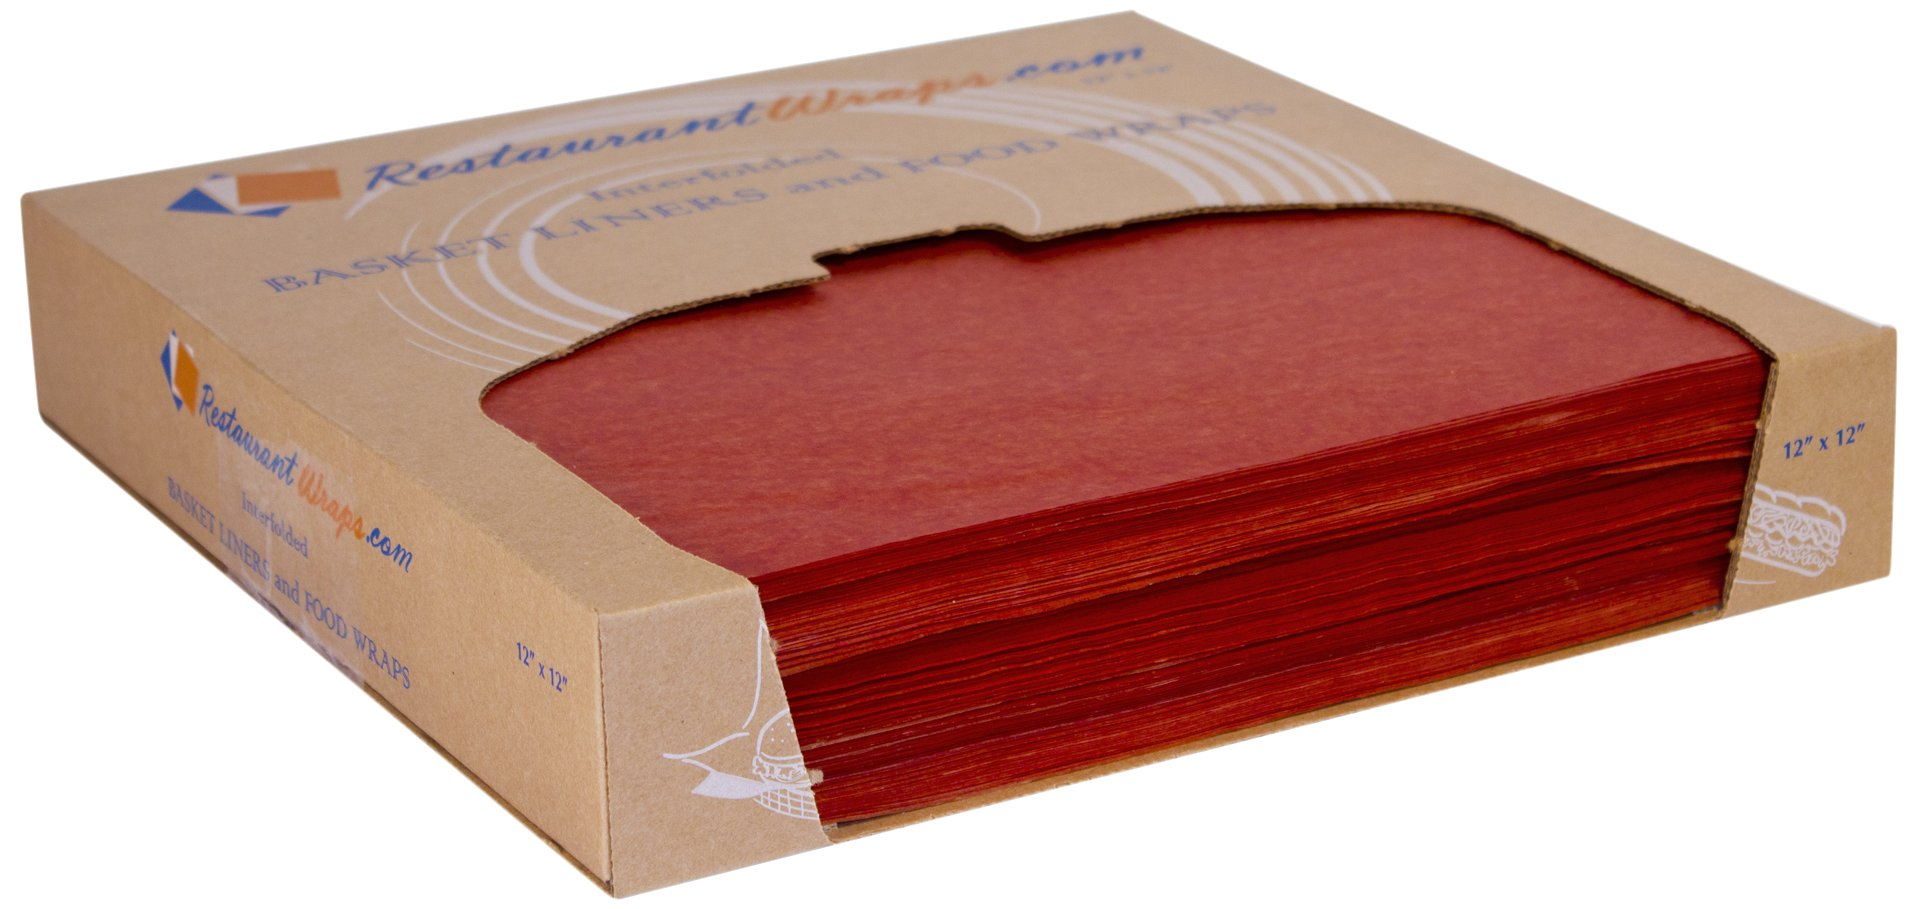 RestaurantWraps.com Waxed Sheets, Basket Liner and Food Wrap, 12'' x 12'', Cinnamon (6 Packs of 1000 Sheets)